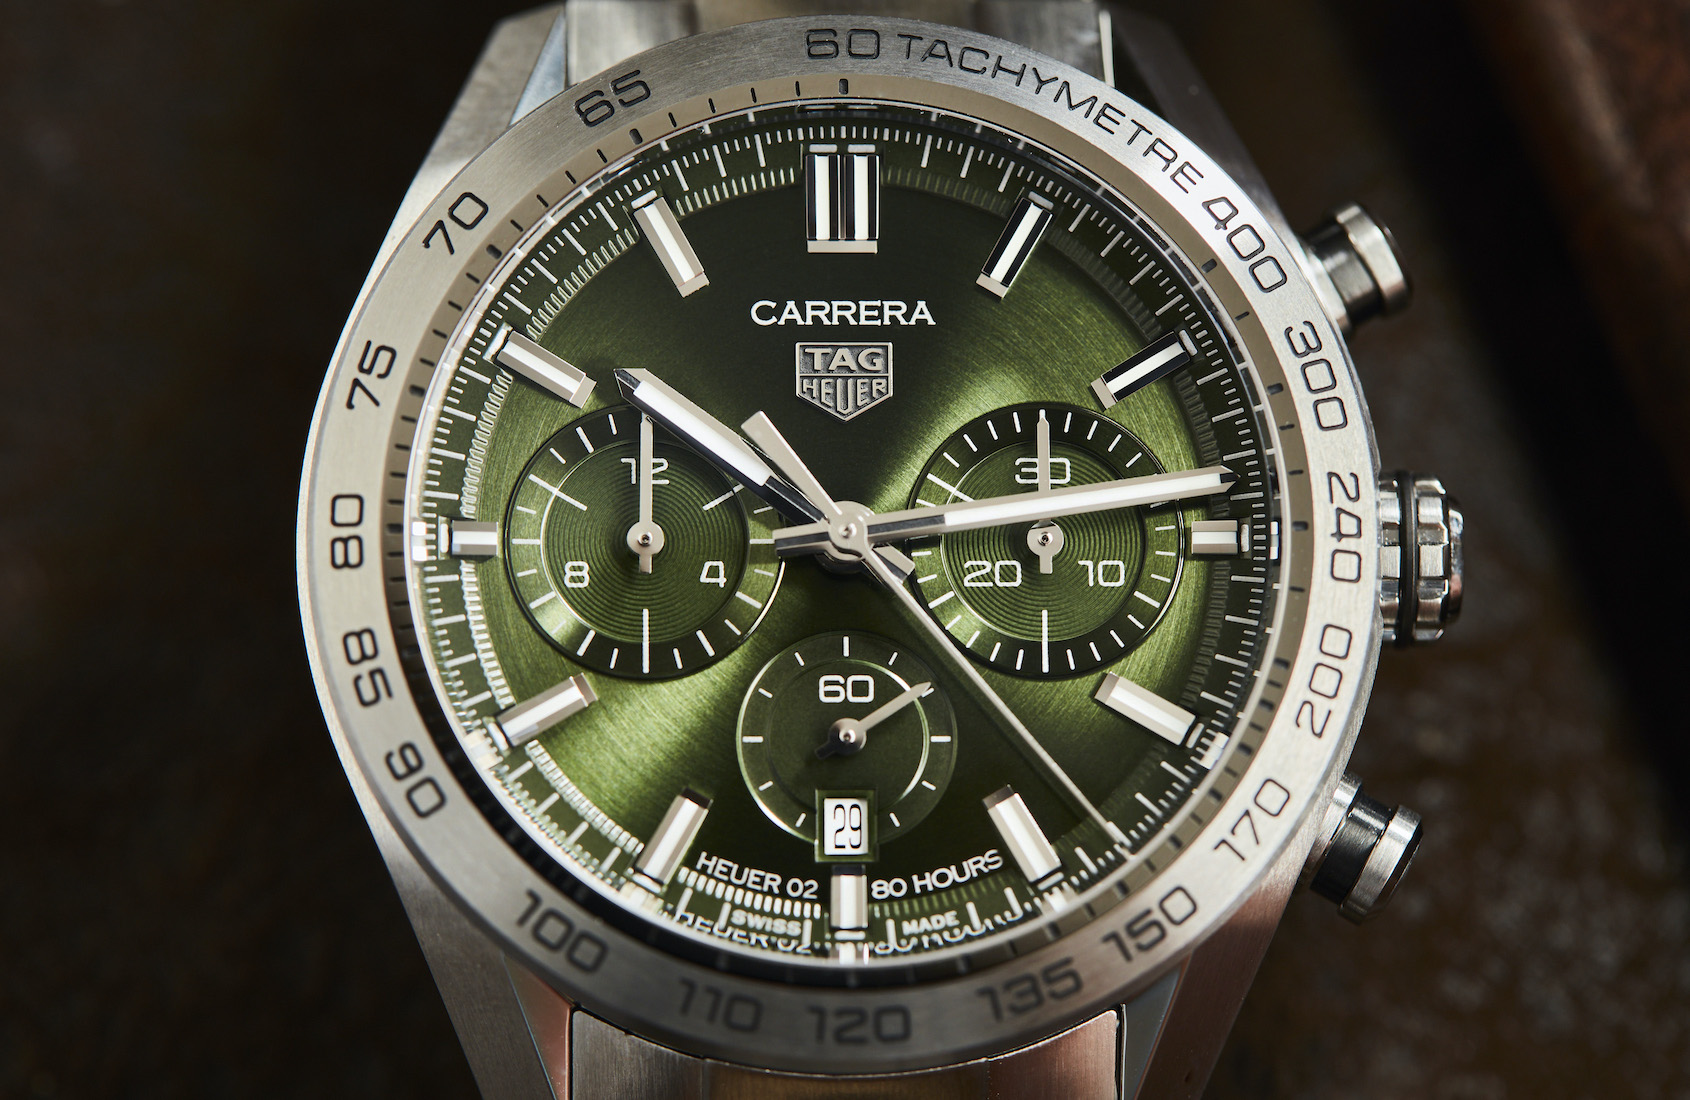 The best fake TAG Heuer is with high cost performance.